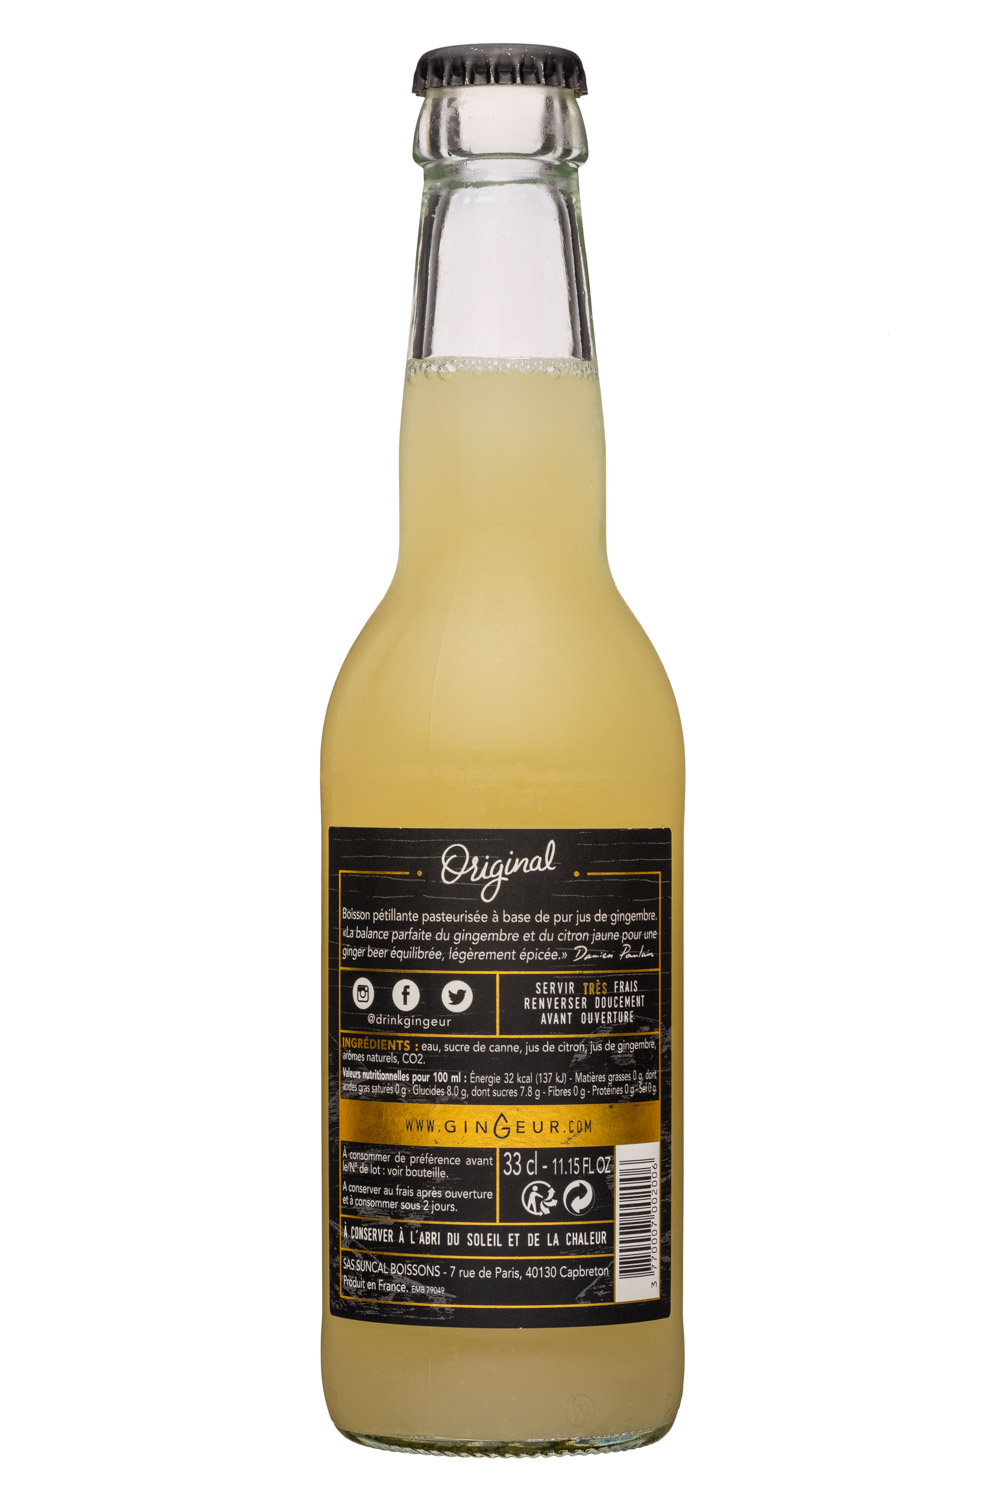 Gingeur: Gingeur-11oz-GingerBeer-Facts